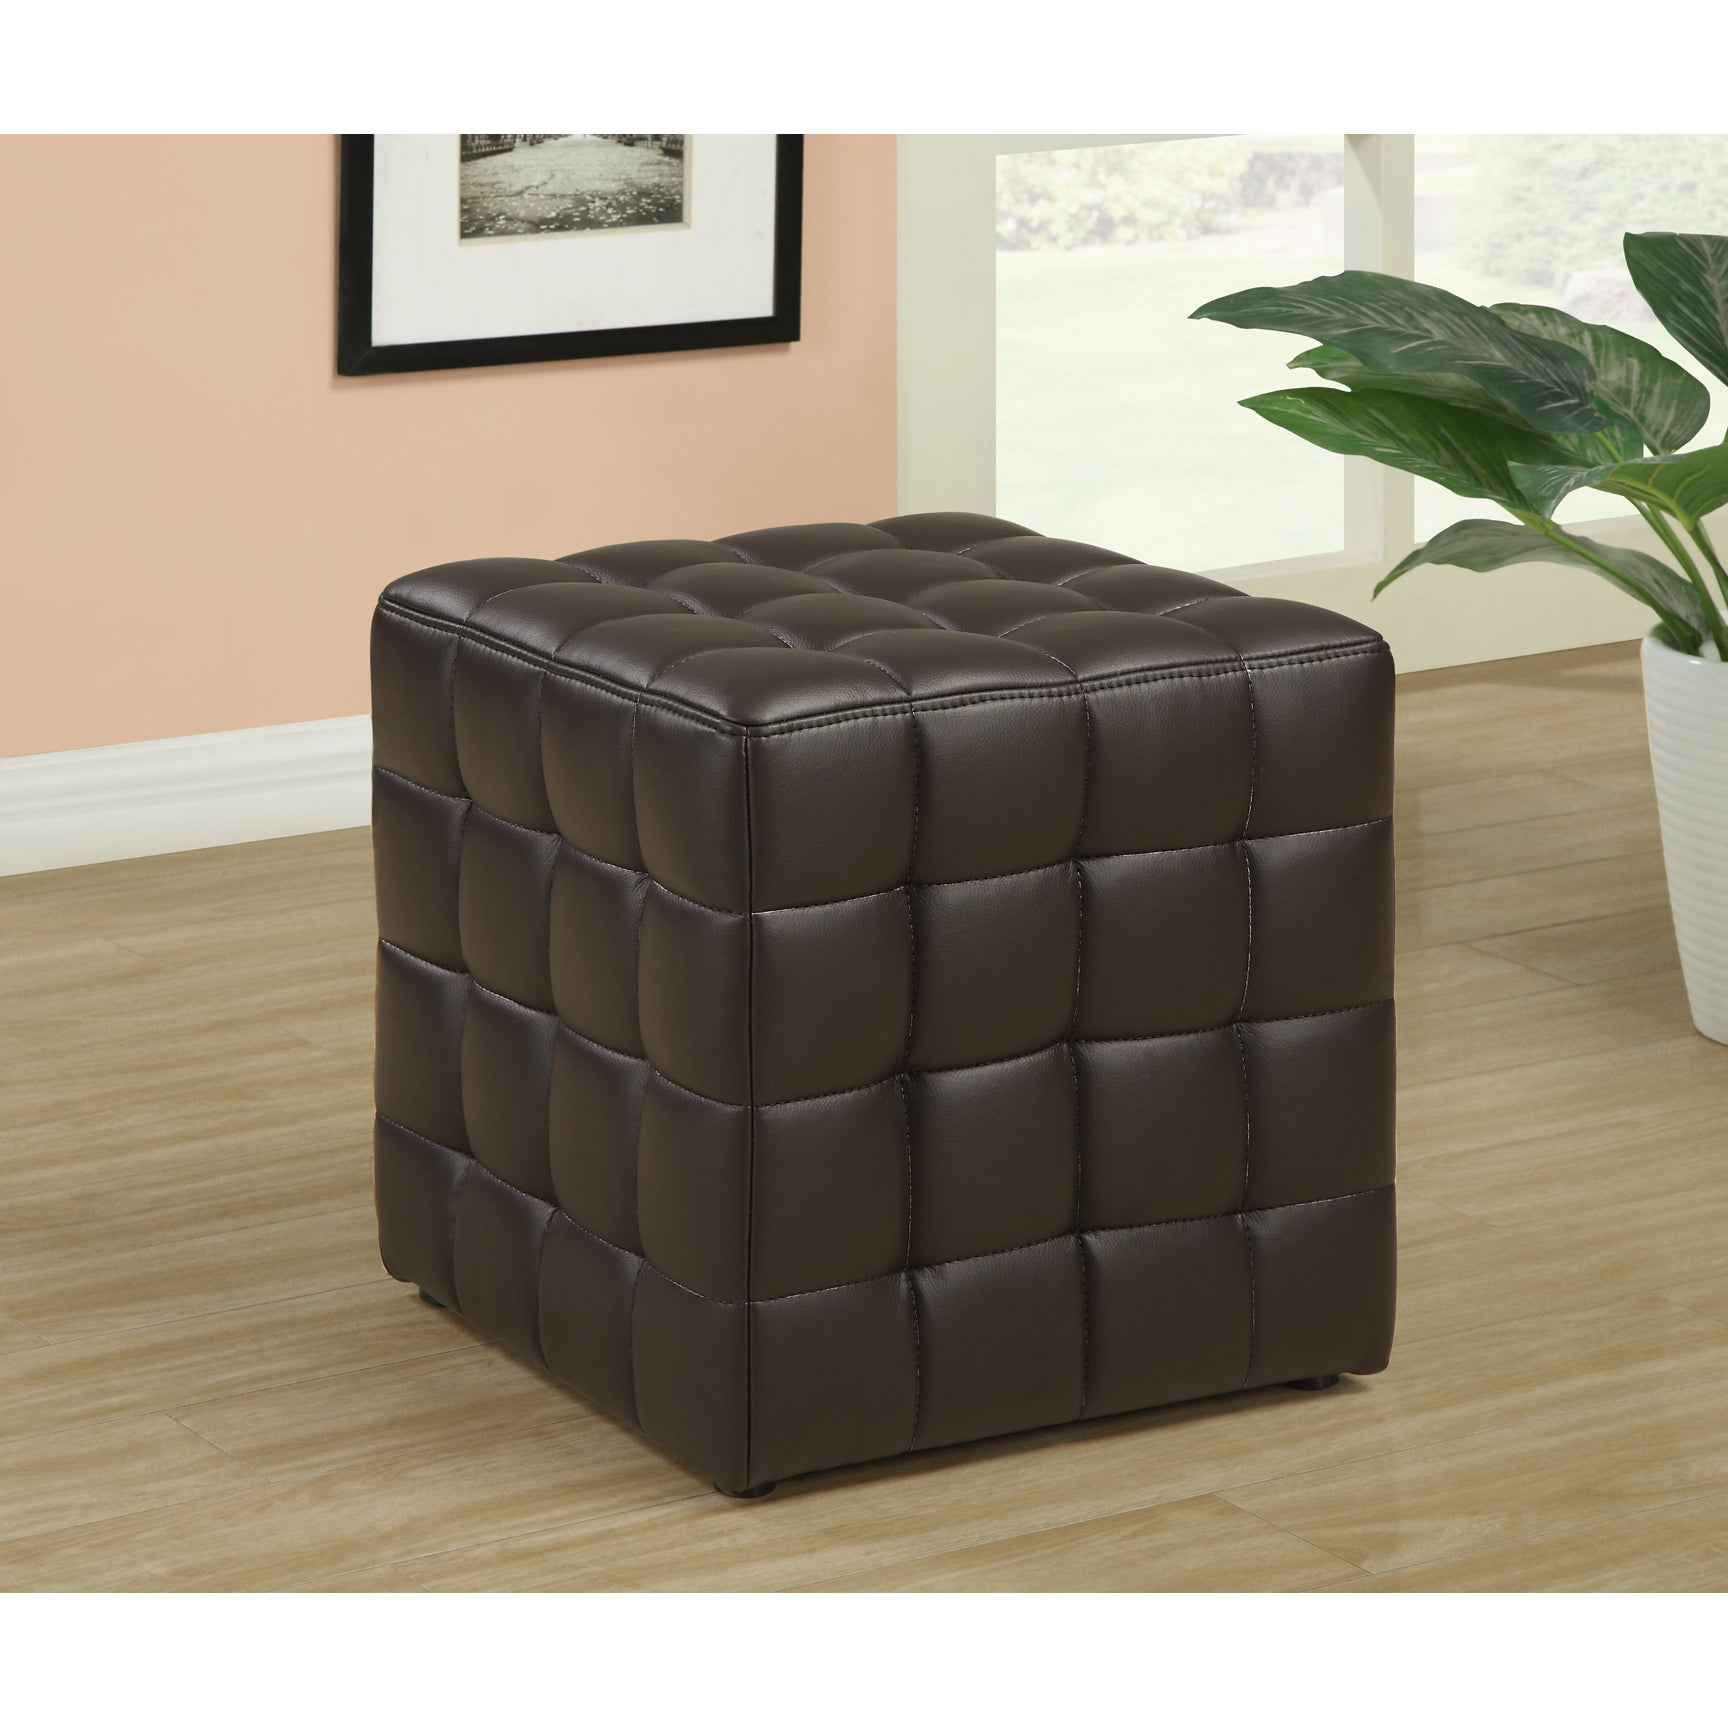 dark brown leather look ottoman free shipping today 14354955. Black Bedroom Furniture Sets. Home Design Ideas